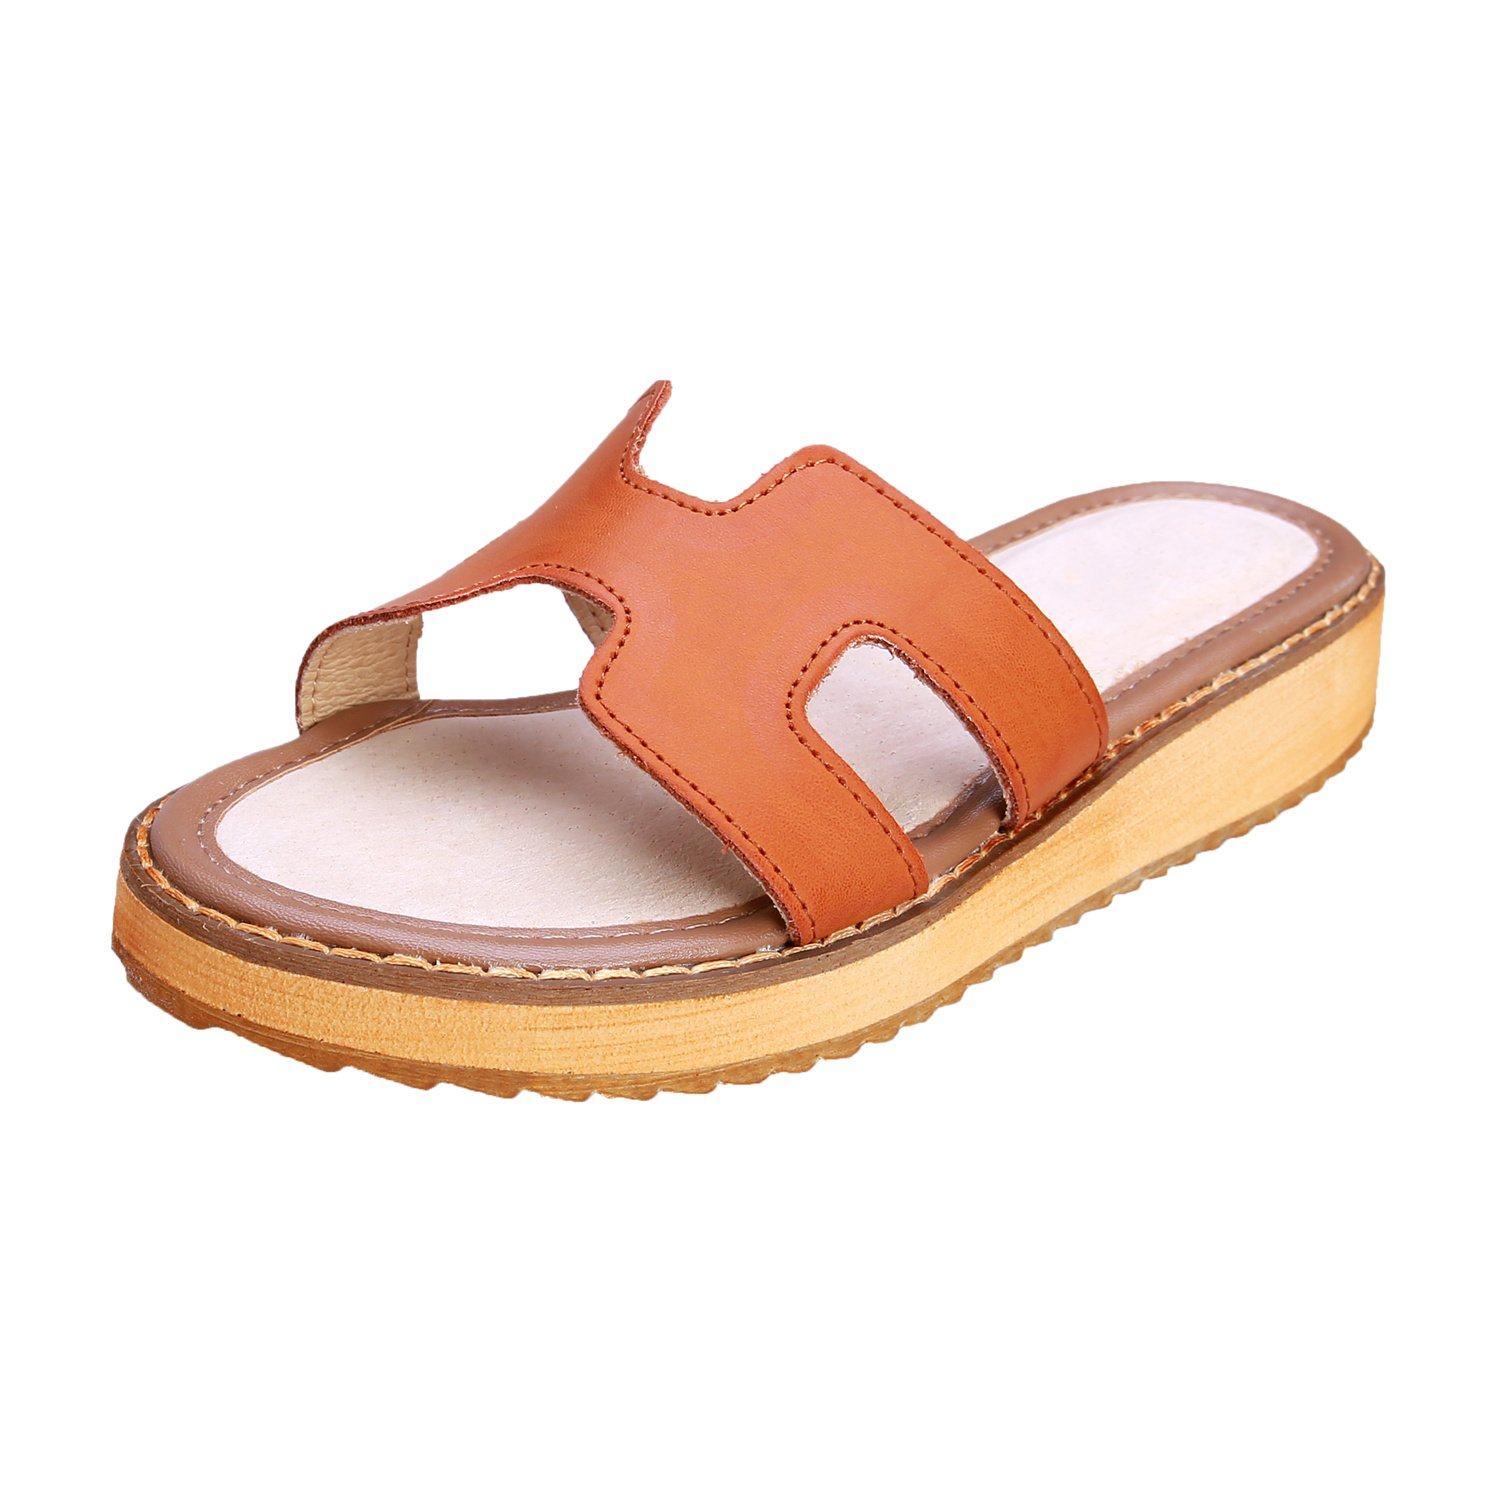 Smilun Girl's Fashion Flip Flops Thongs Sandals Wedge Sandals Flip Flops Thongs Open Toe Sandals Flip Flops Flip Flops Thongs Sandal Summer Sandals Brown US6